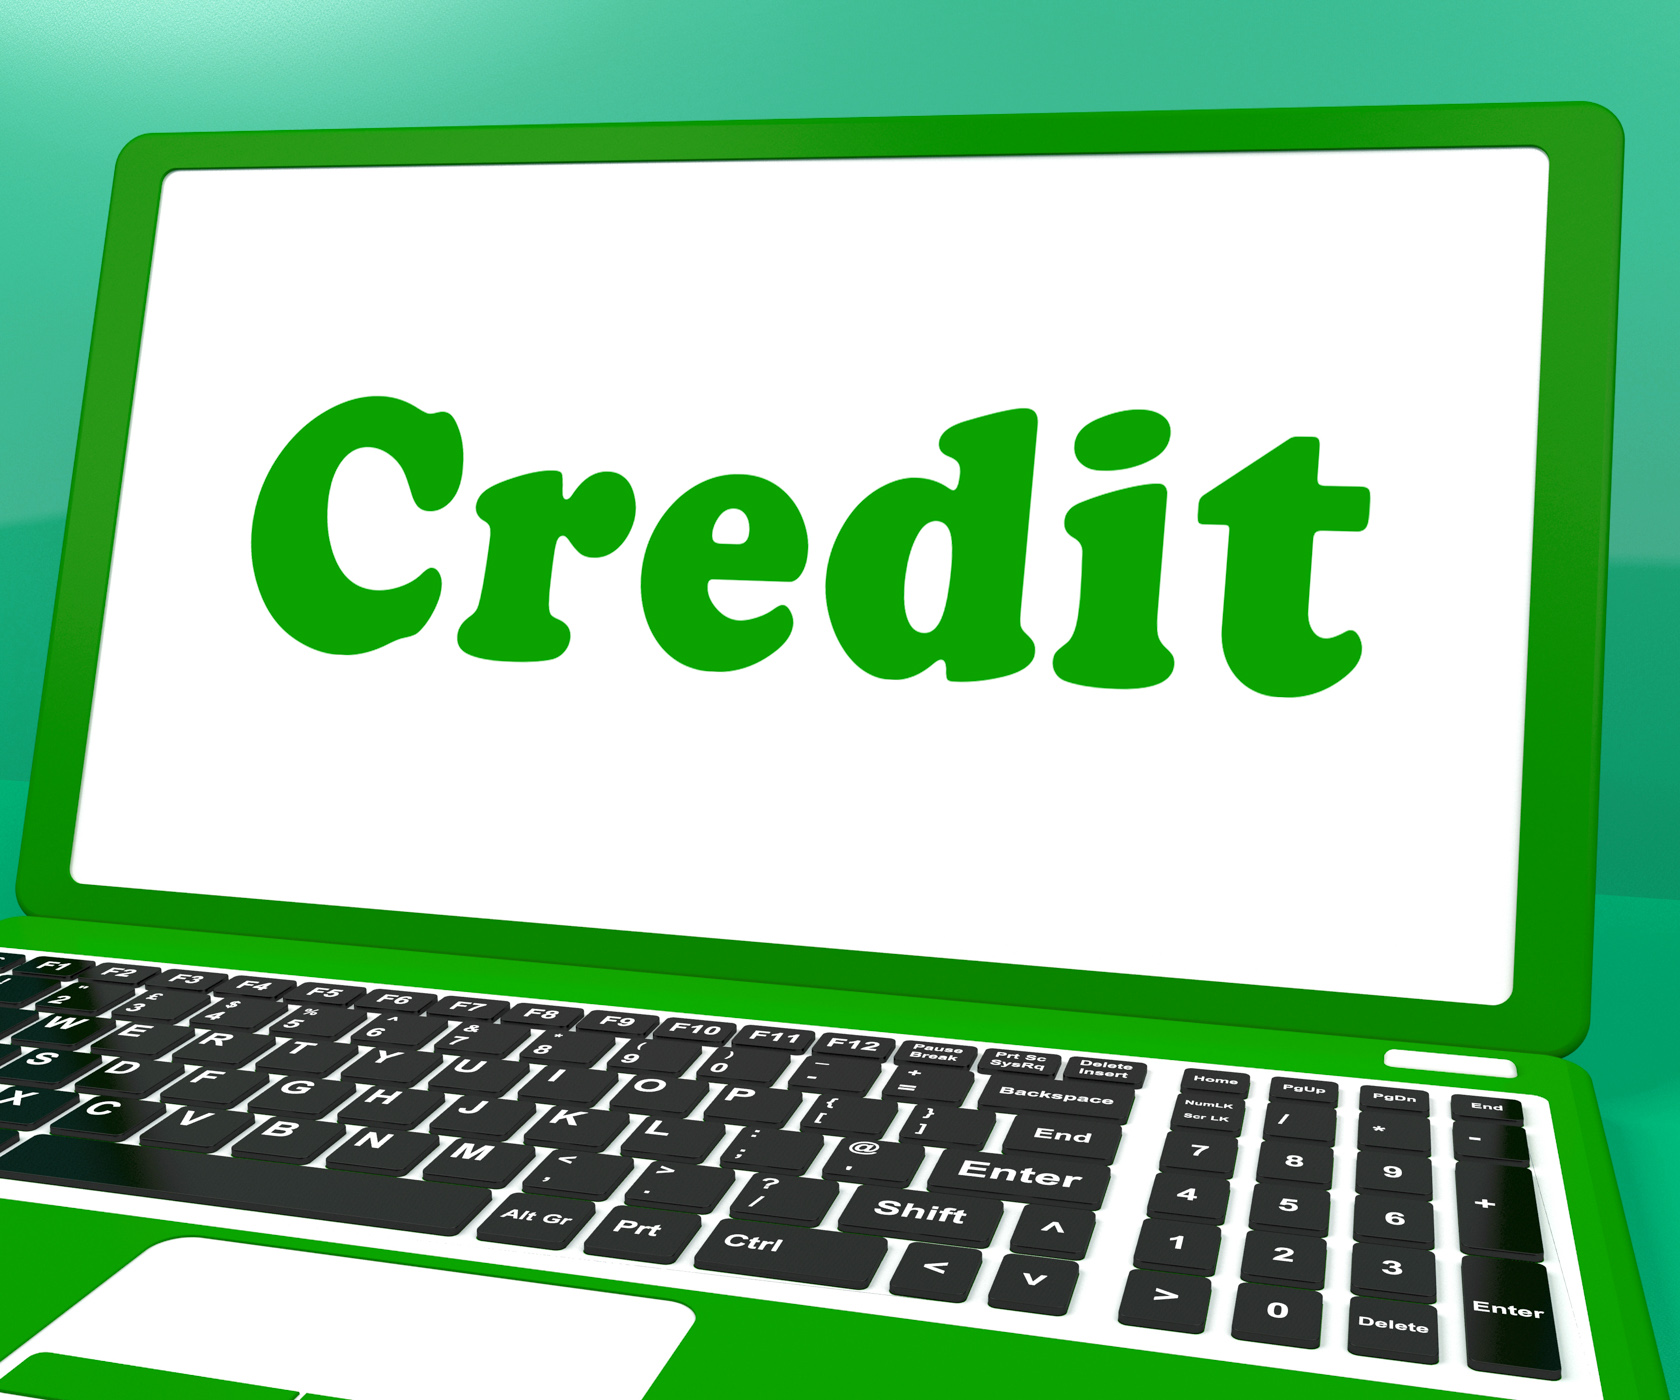 Credit Laptop Shows Finance Or Loan For Purchasing, Internet, Purchasing, Purchase, Online, HQ Photo